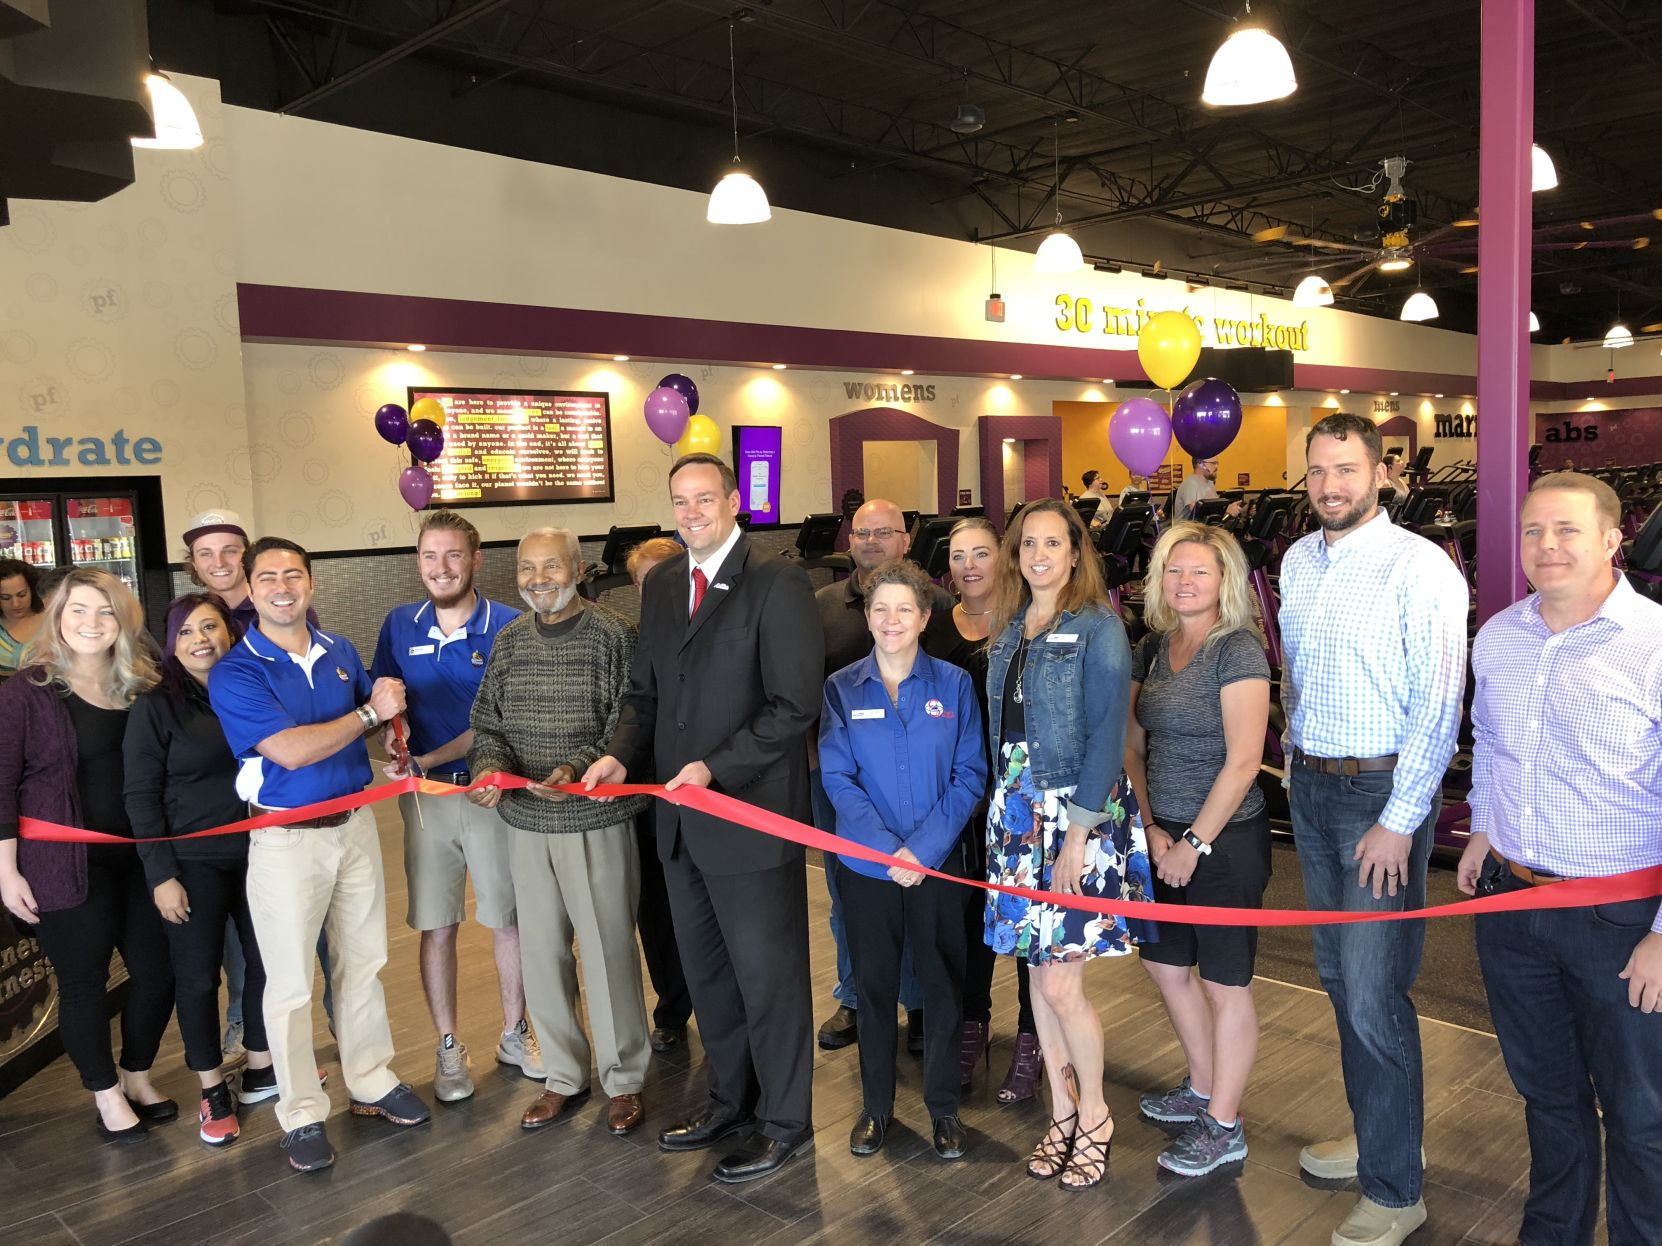 Planet Fitness Staff Says Community Was The Reason Behind The Build News Pinalcentral Com